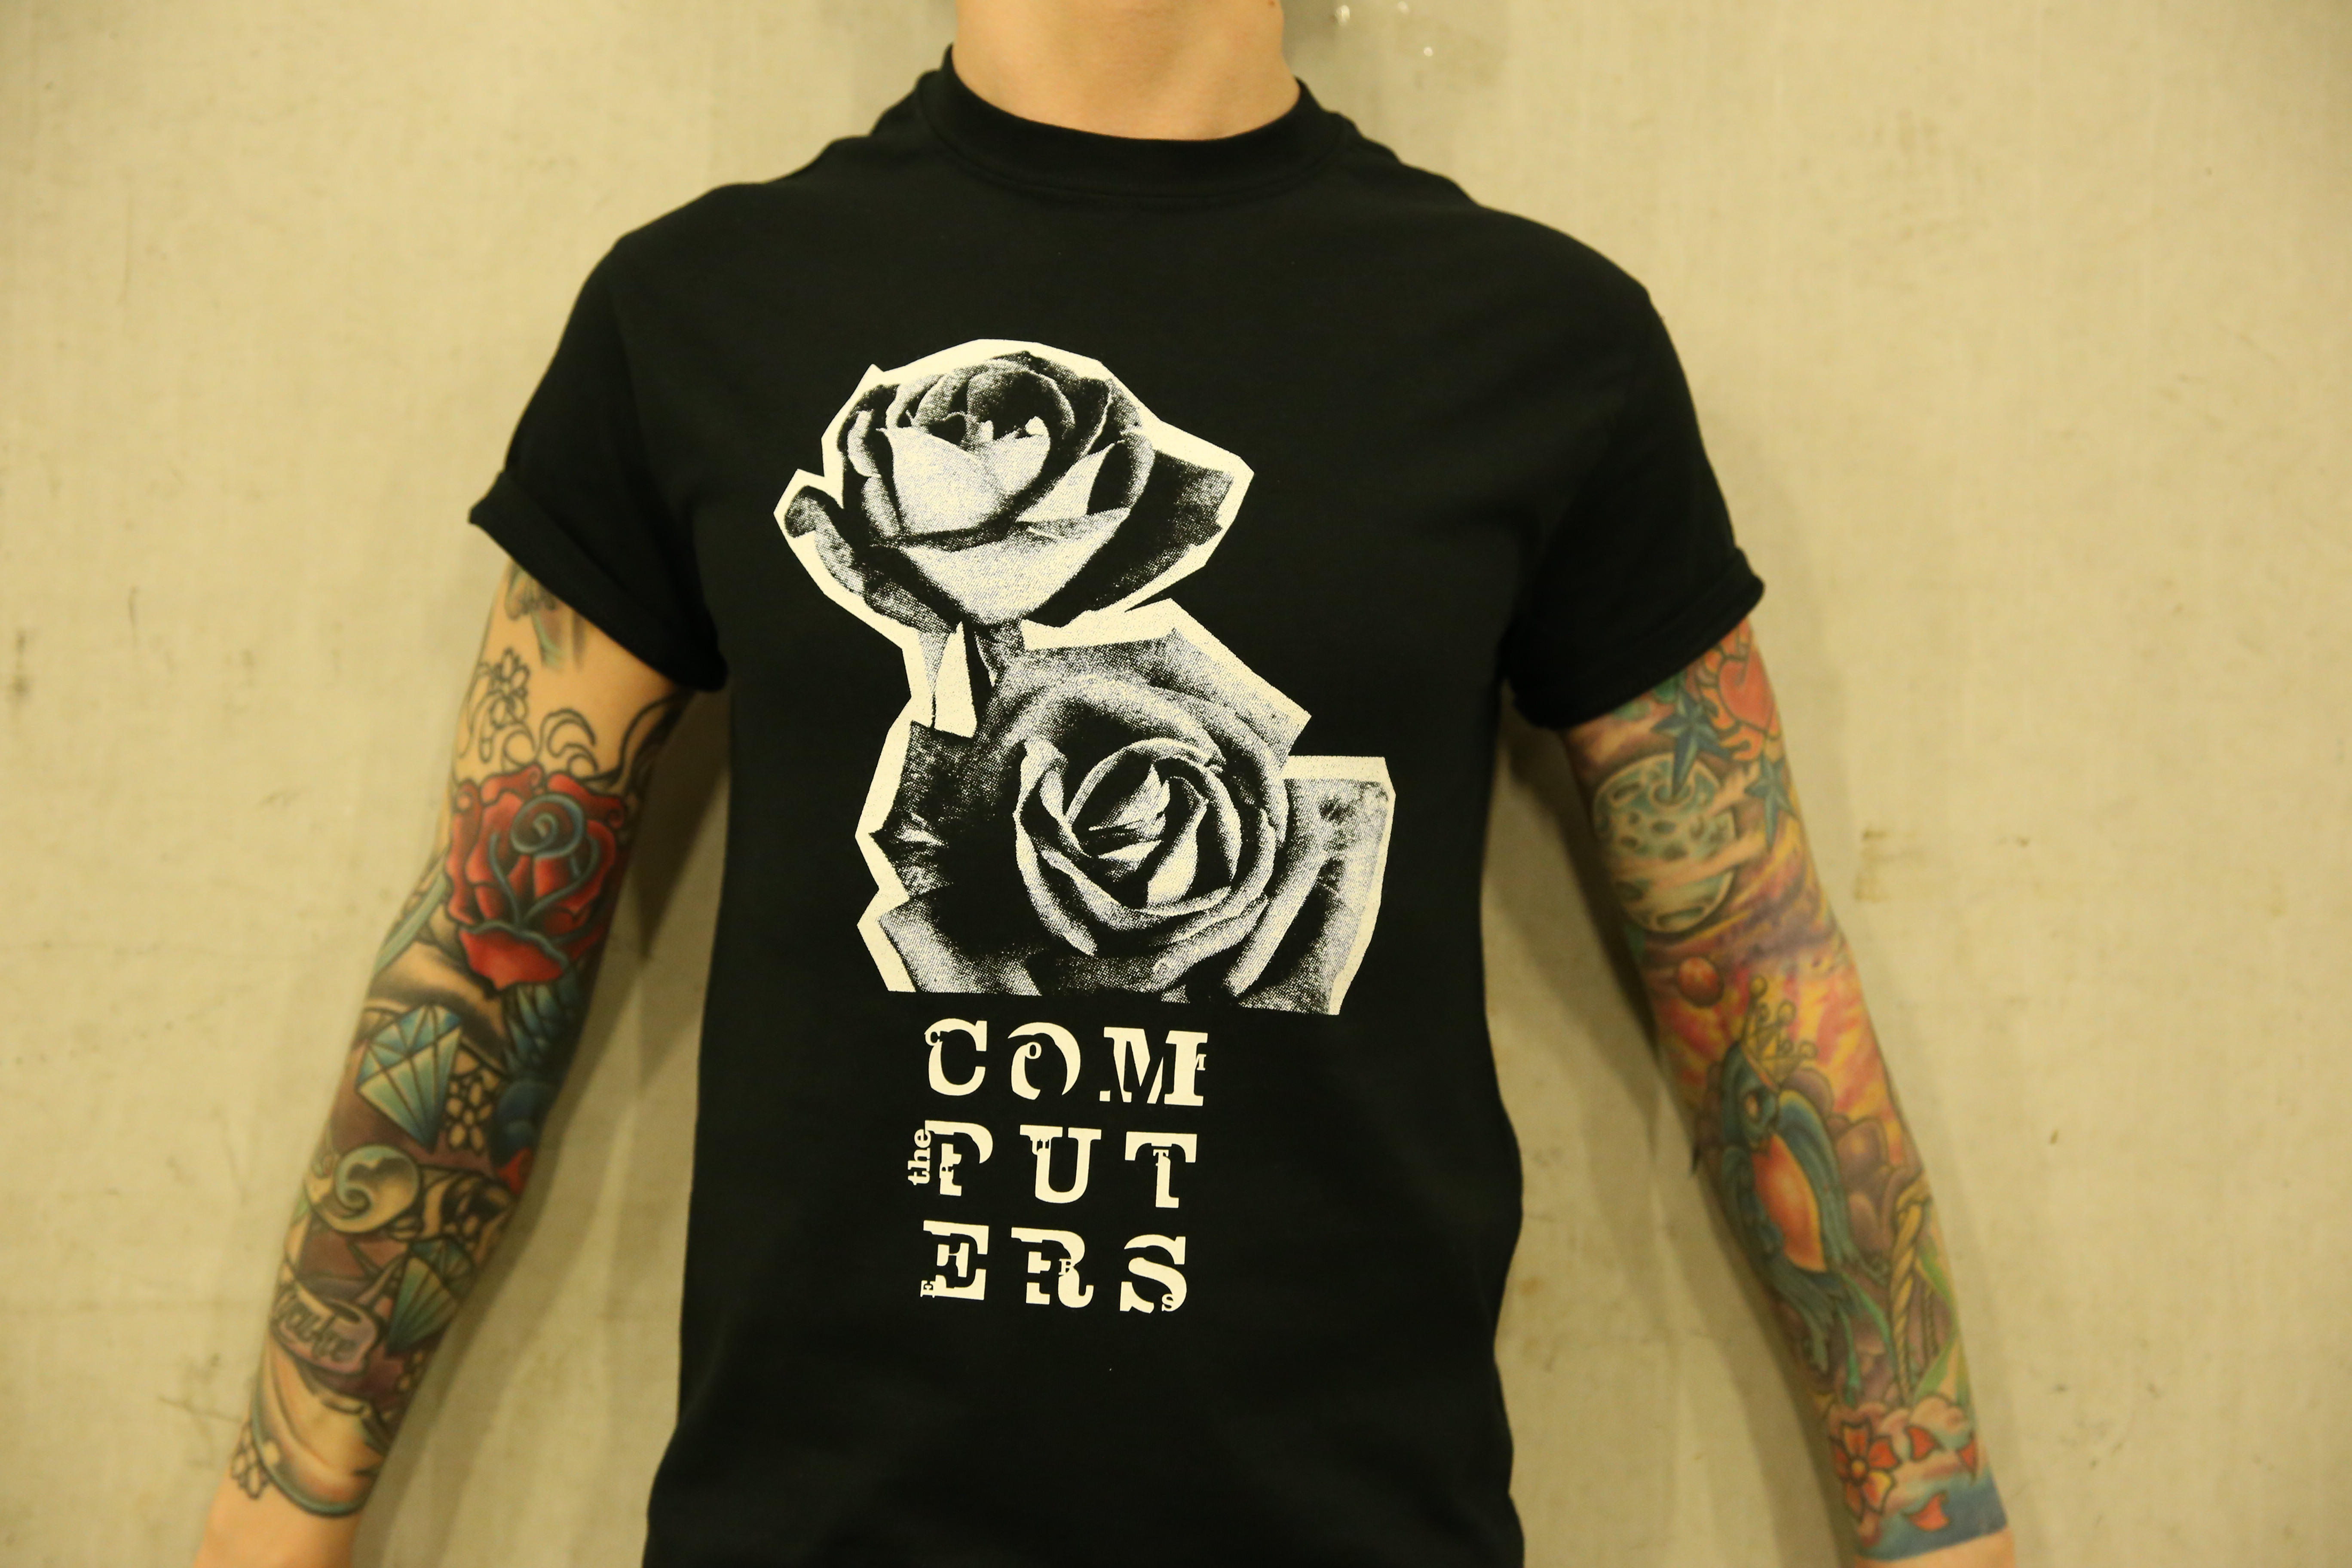 The Computers 'Roses' Tee